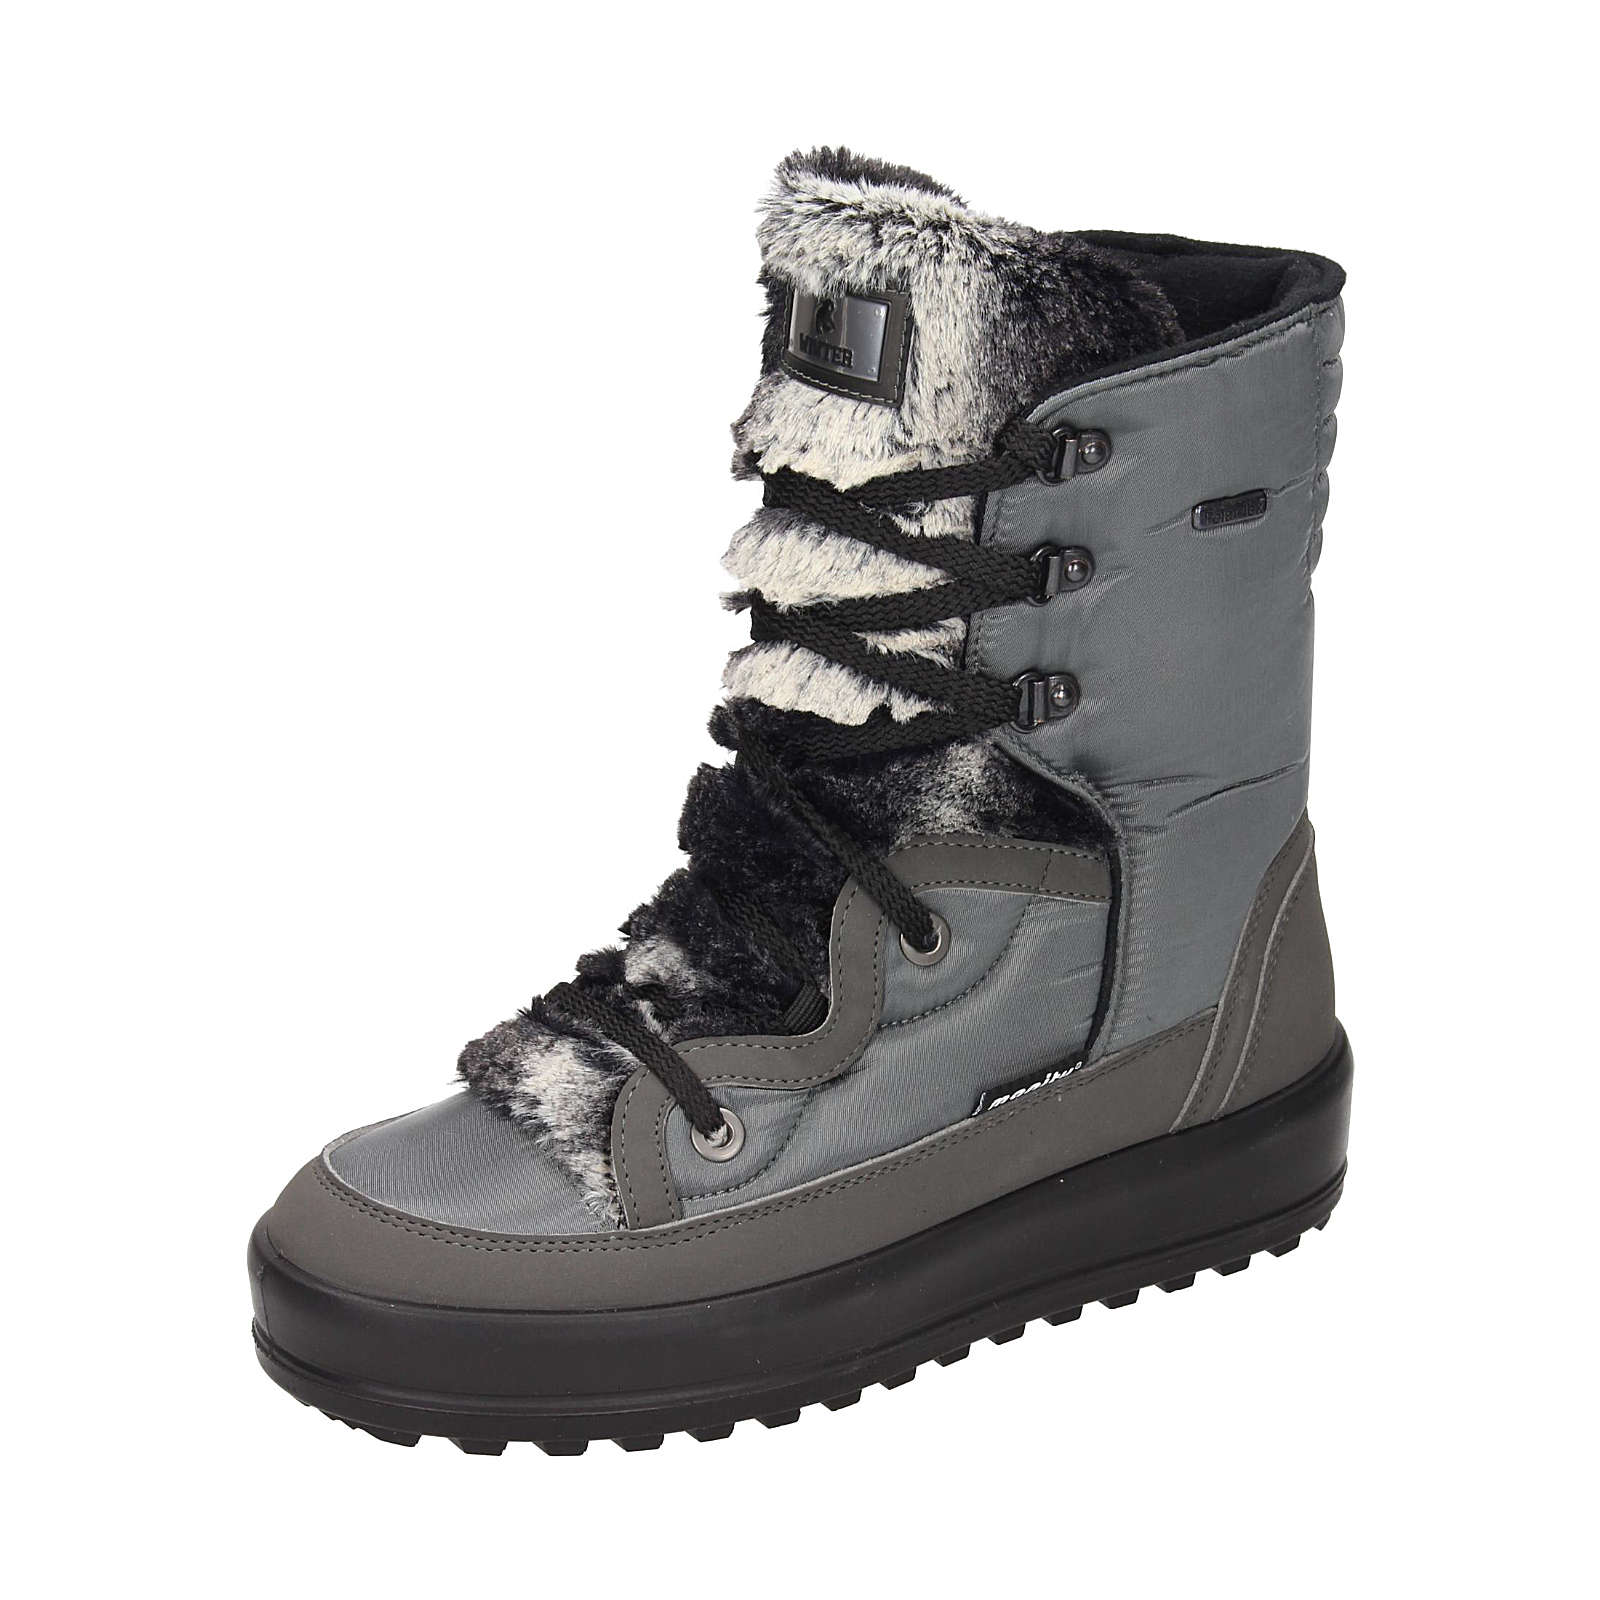 Polar-Tex Damen Snowboot Winterstiefel grau Damen Gr. 36